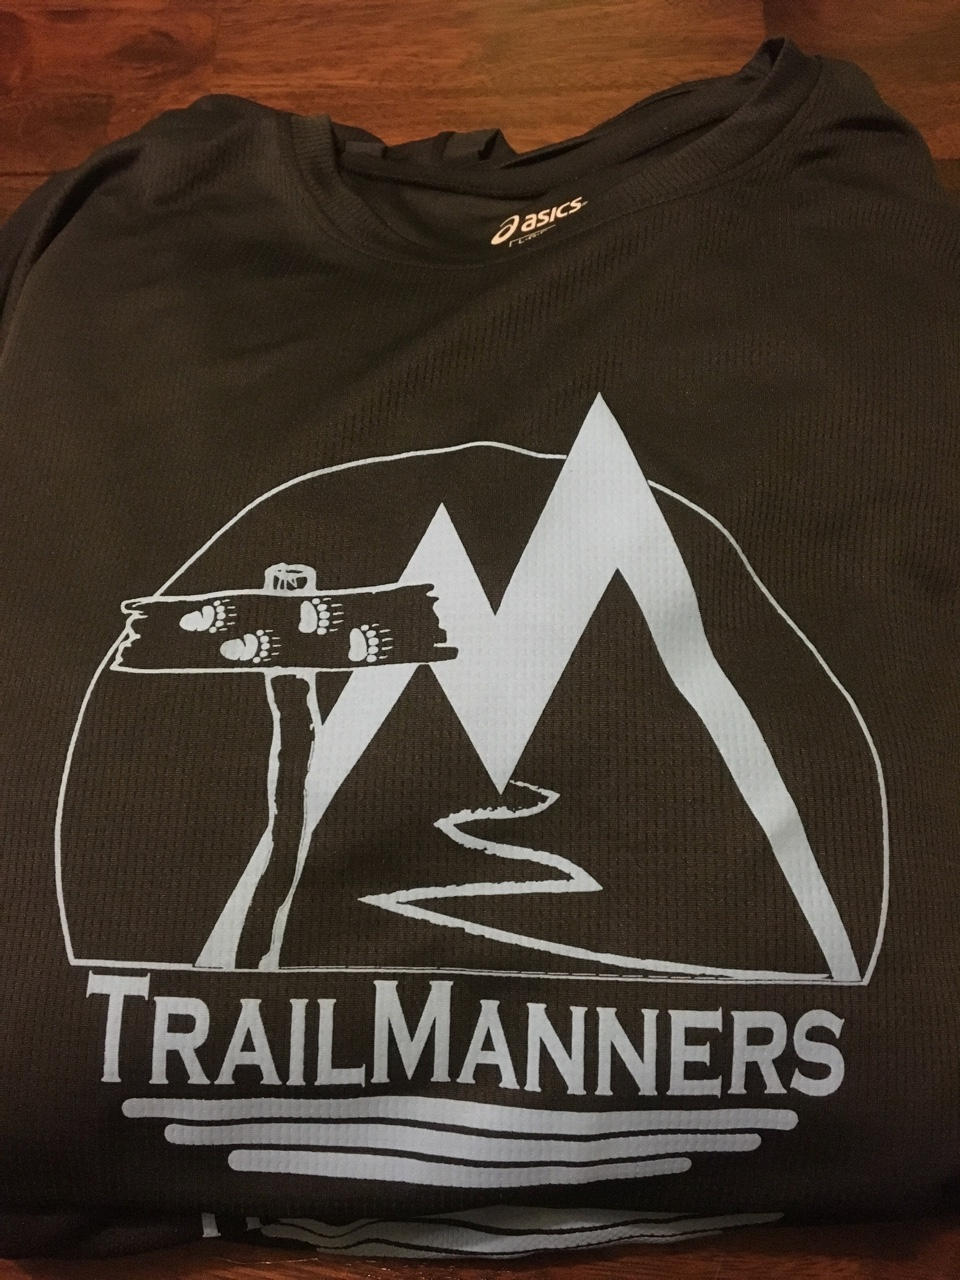 Asics black tech tee with TrailManners logo.